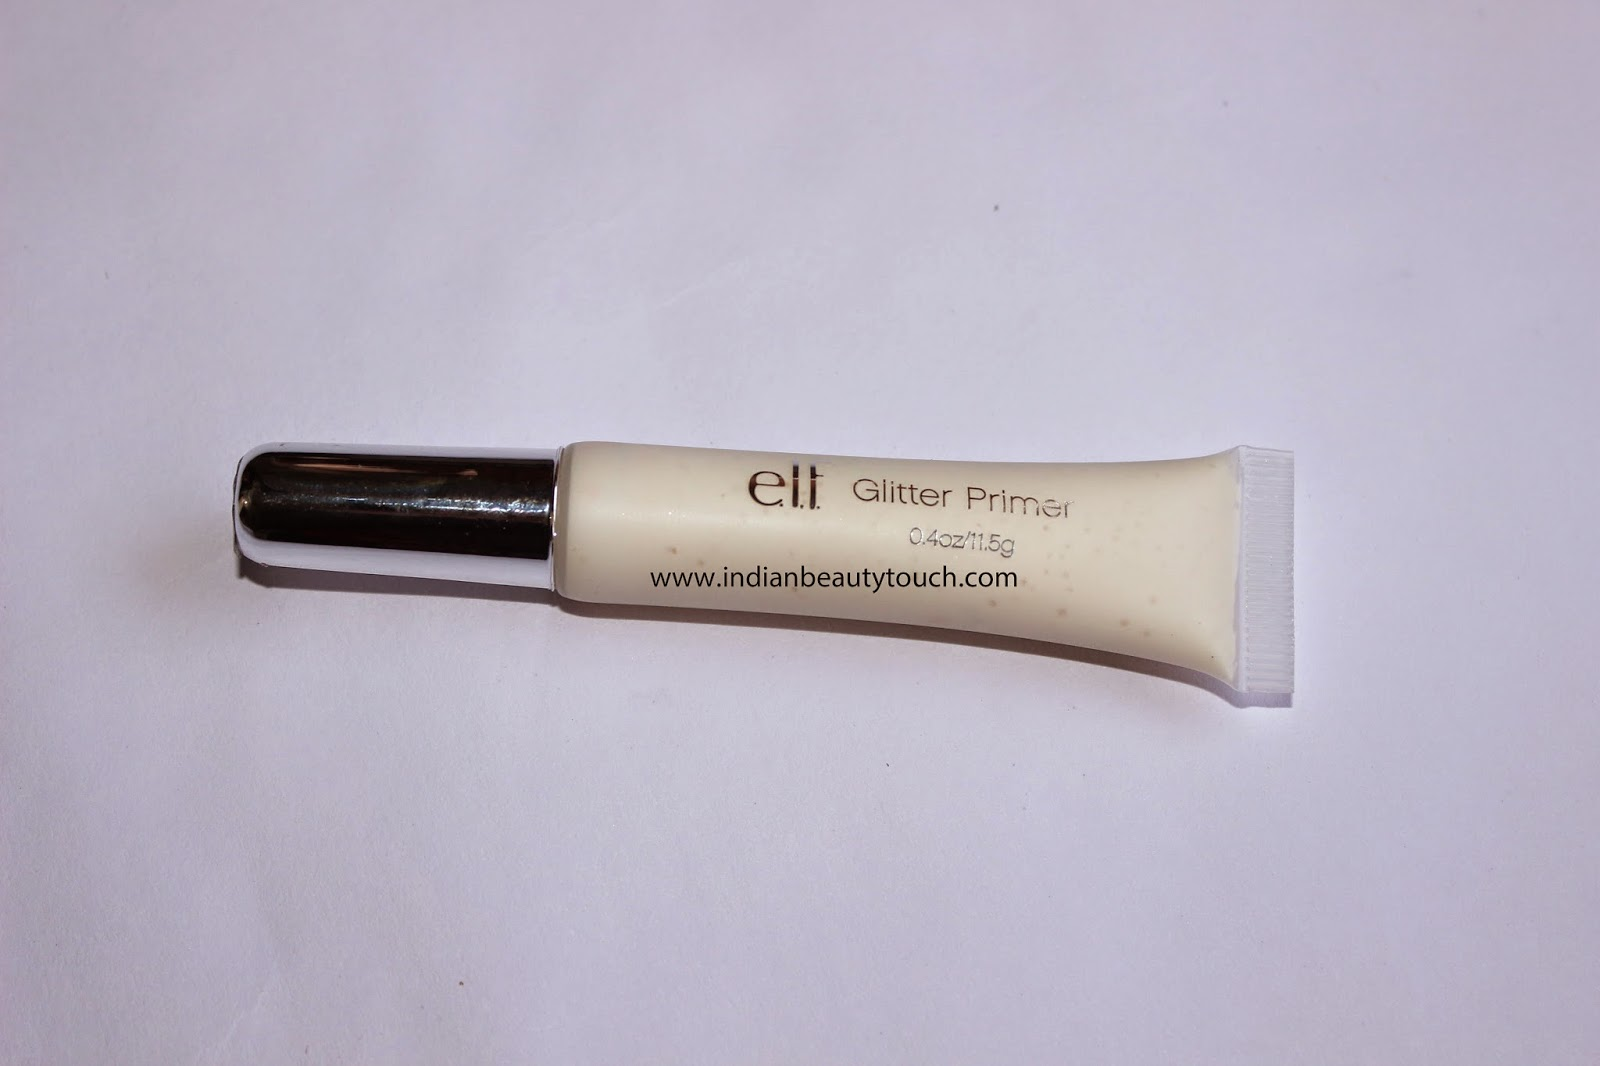 E.l.f. Glitter Primer Review and swacthes